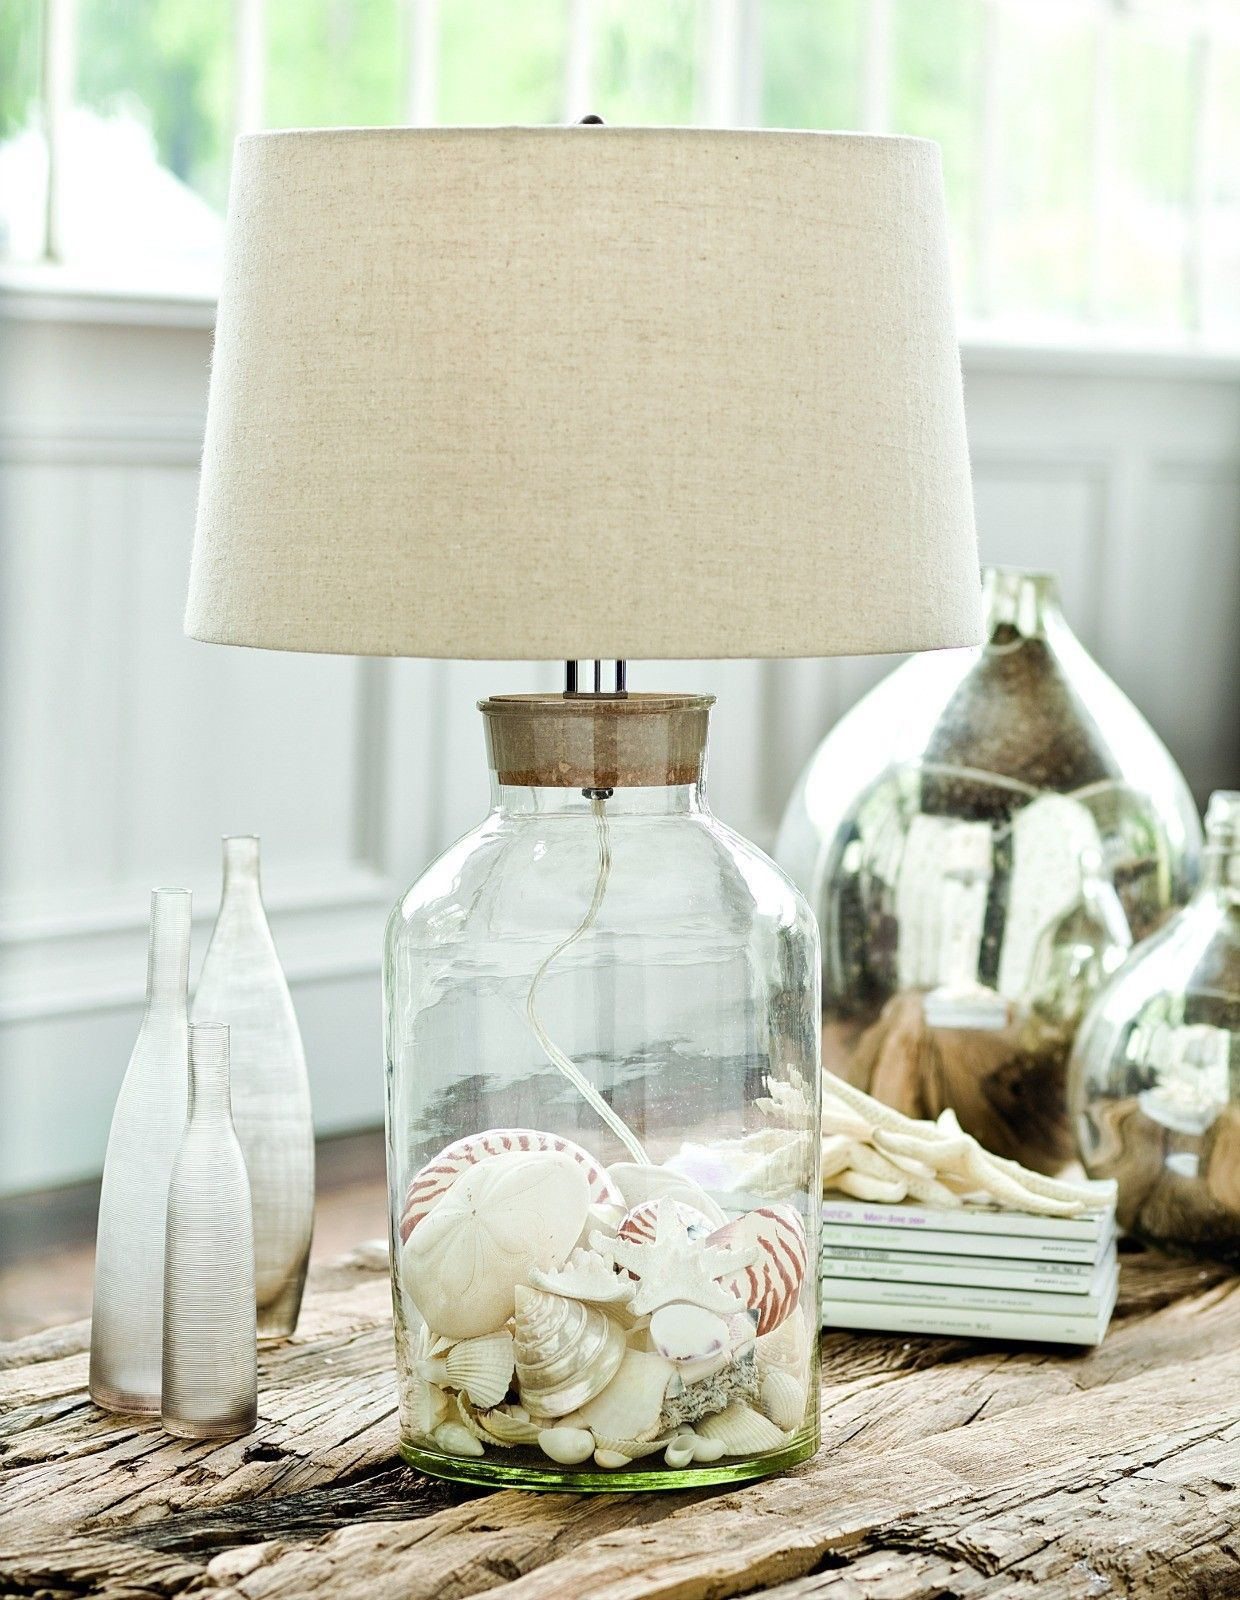 Superbe Beach Cottage Style Table Lamp With A Removable Cork Top To Make Filling  The Round Jar